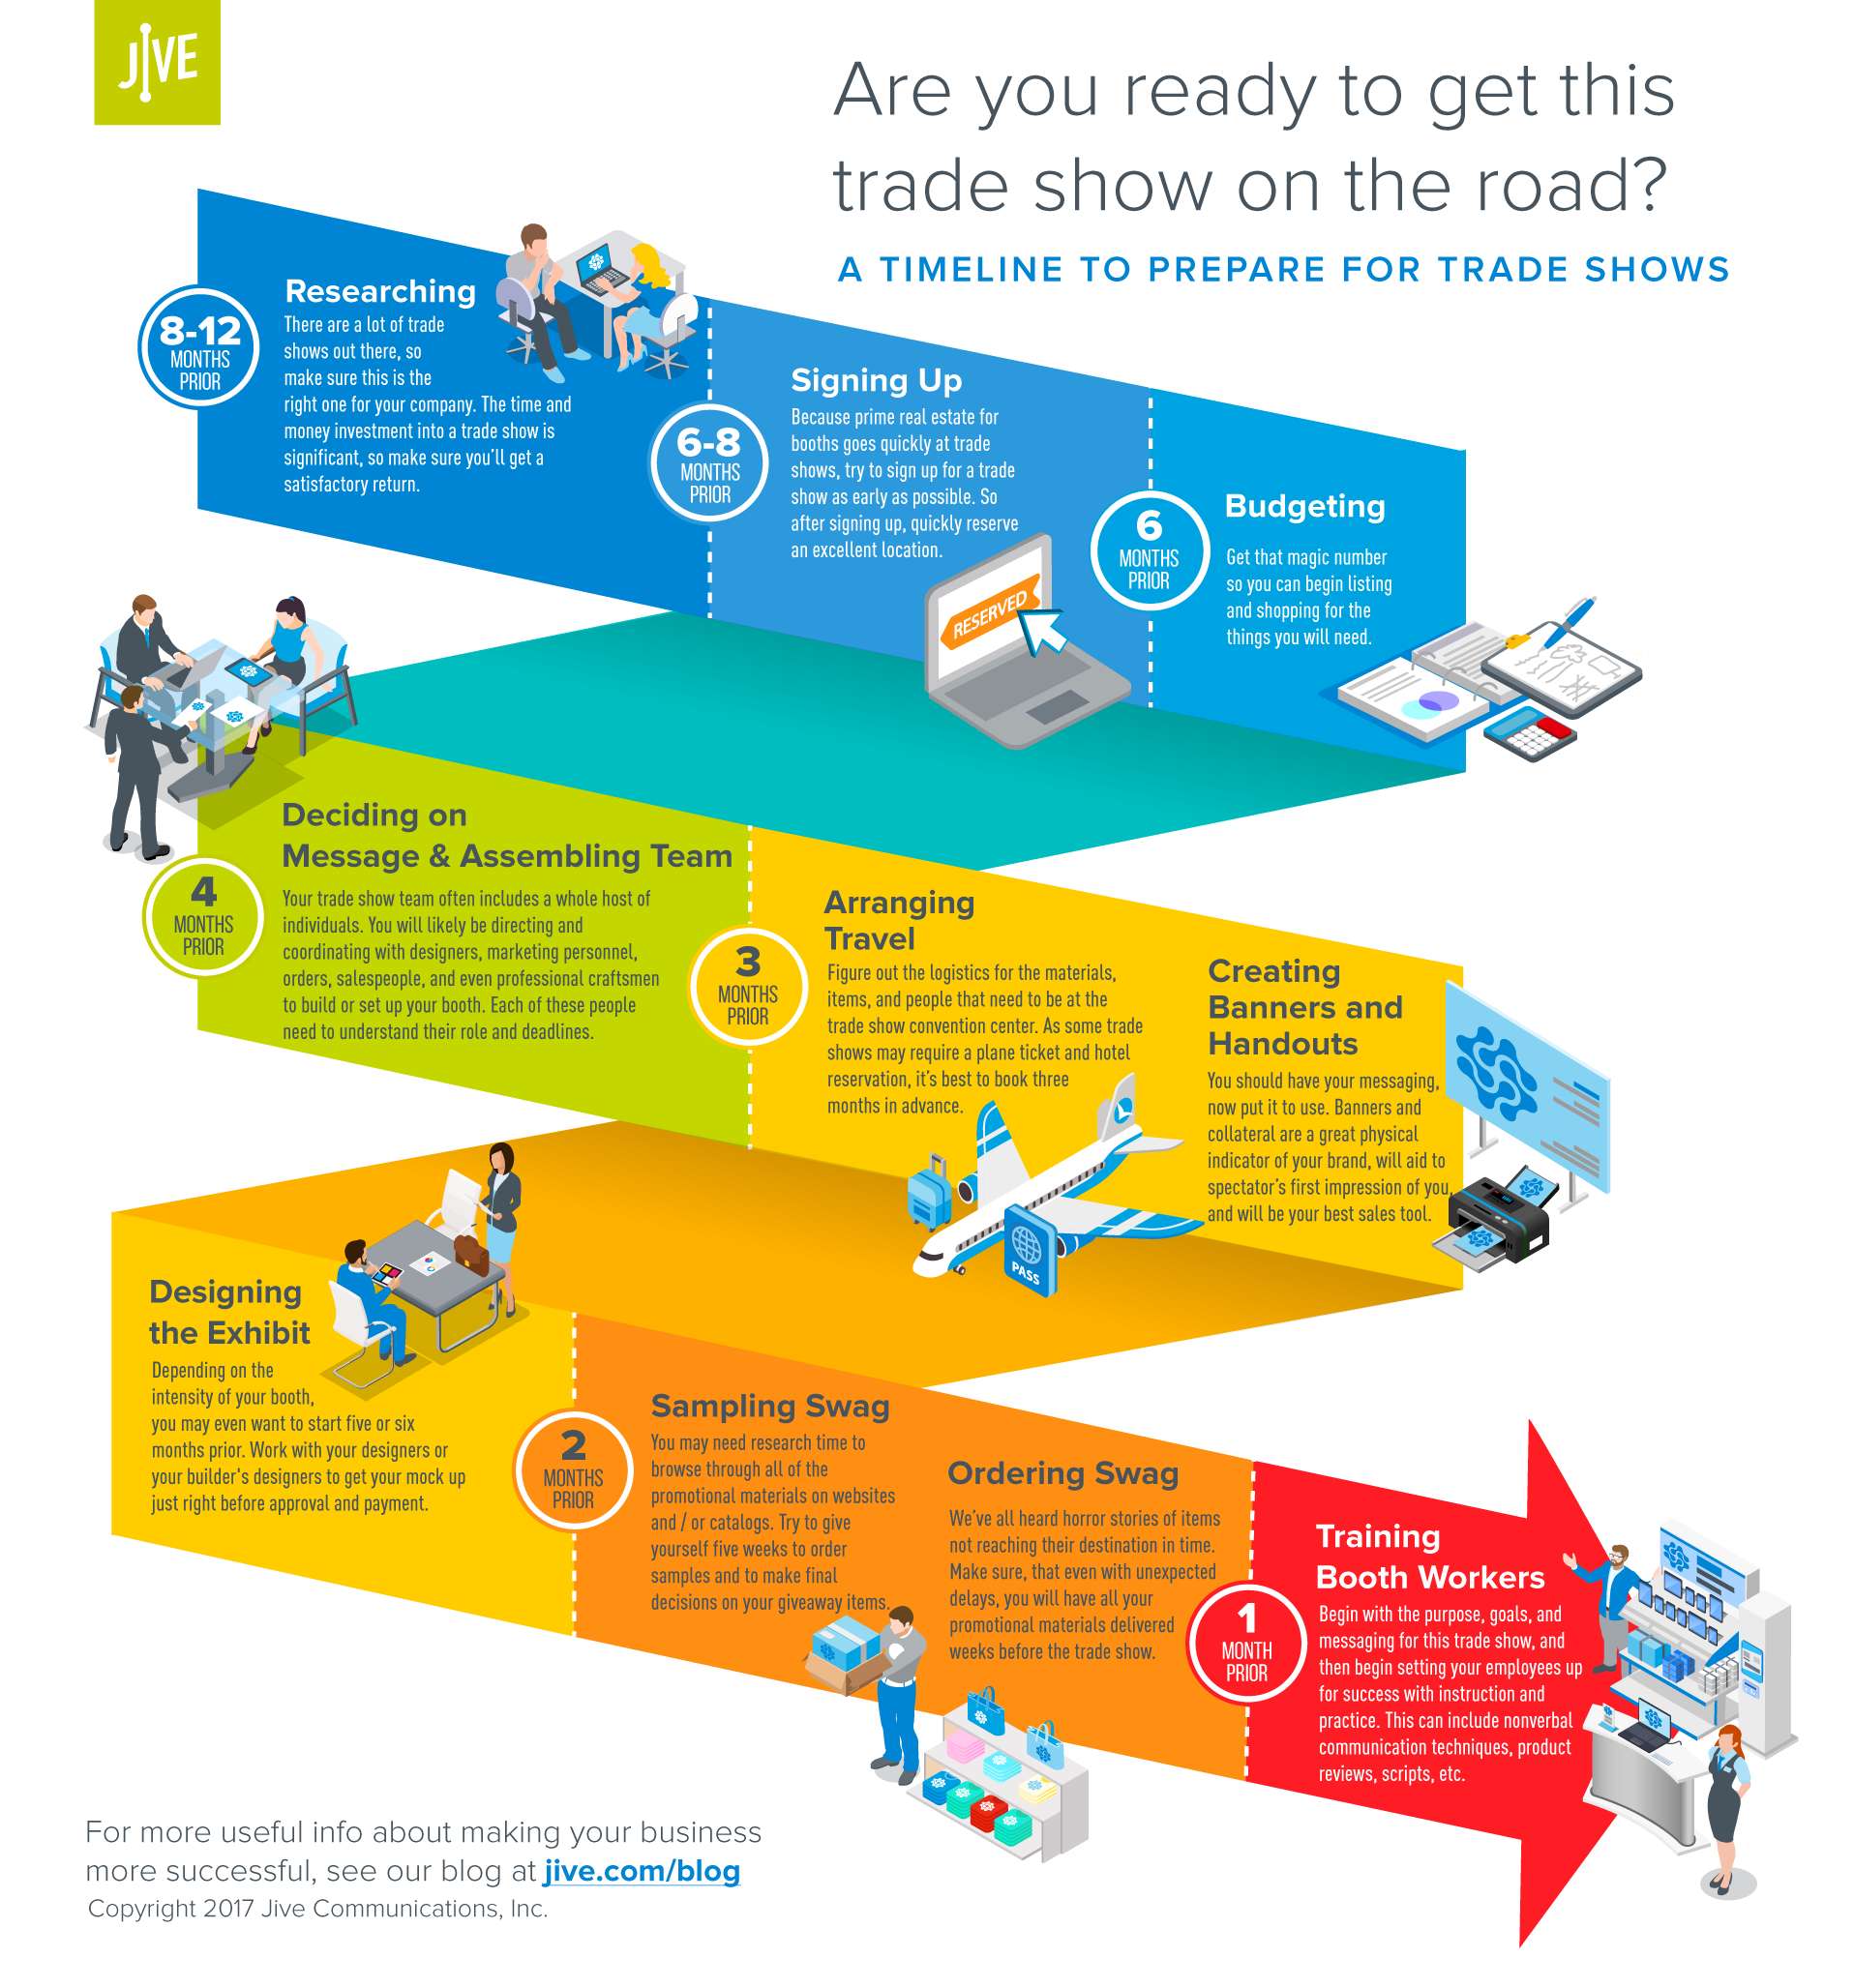 Are you ready to get this trade show on the road?